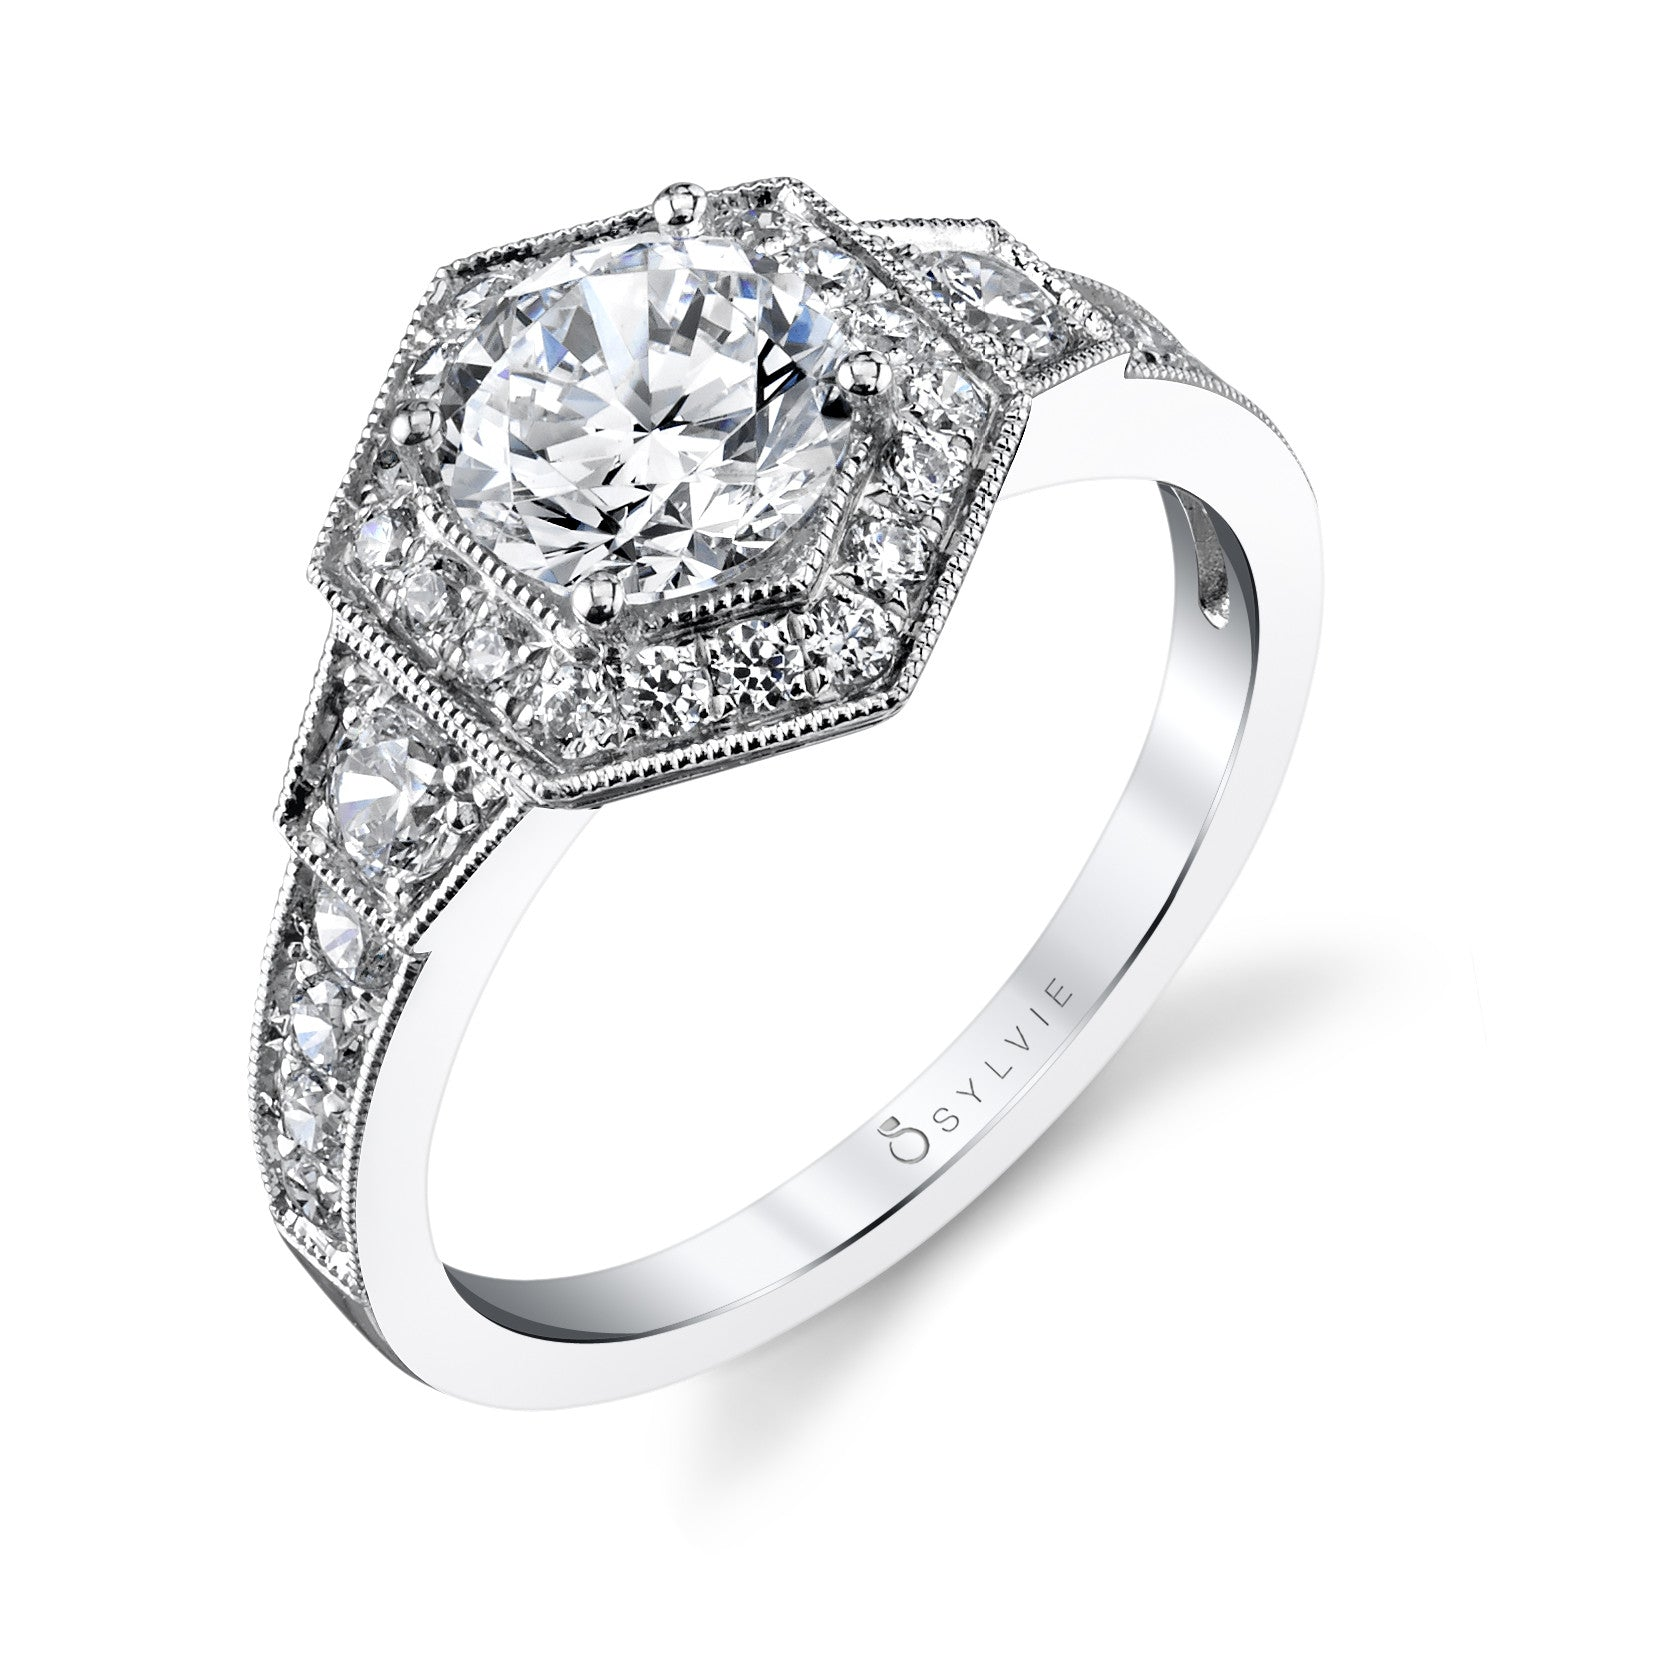 Sylvie 14k White Gold Hexagon Halo Ring with Diamonds